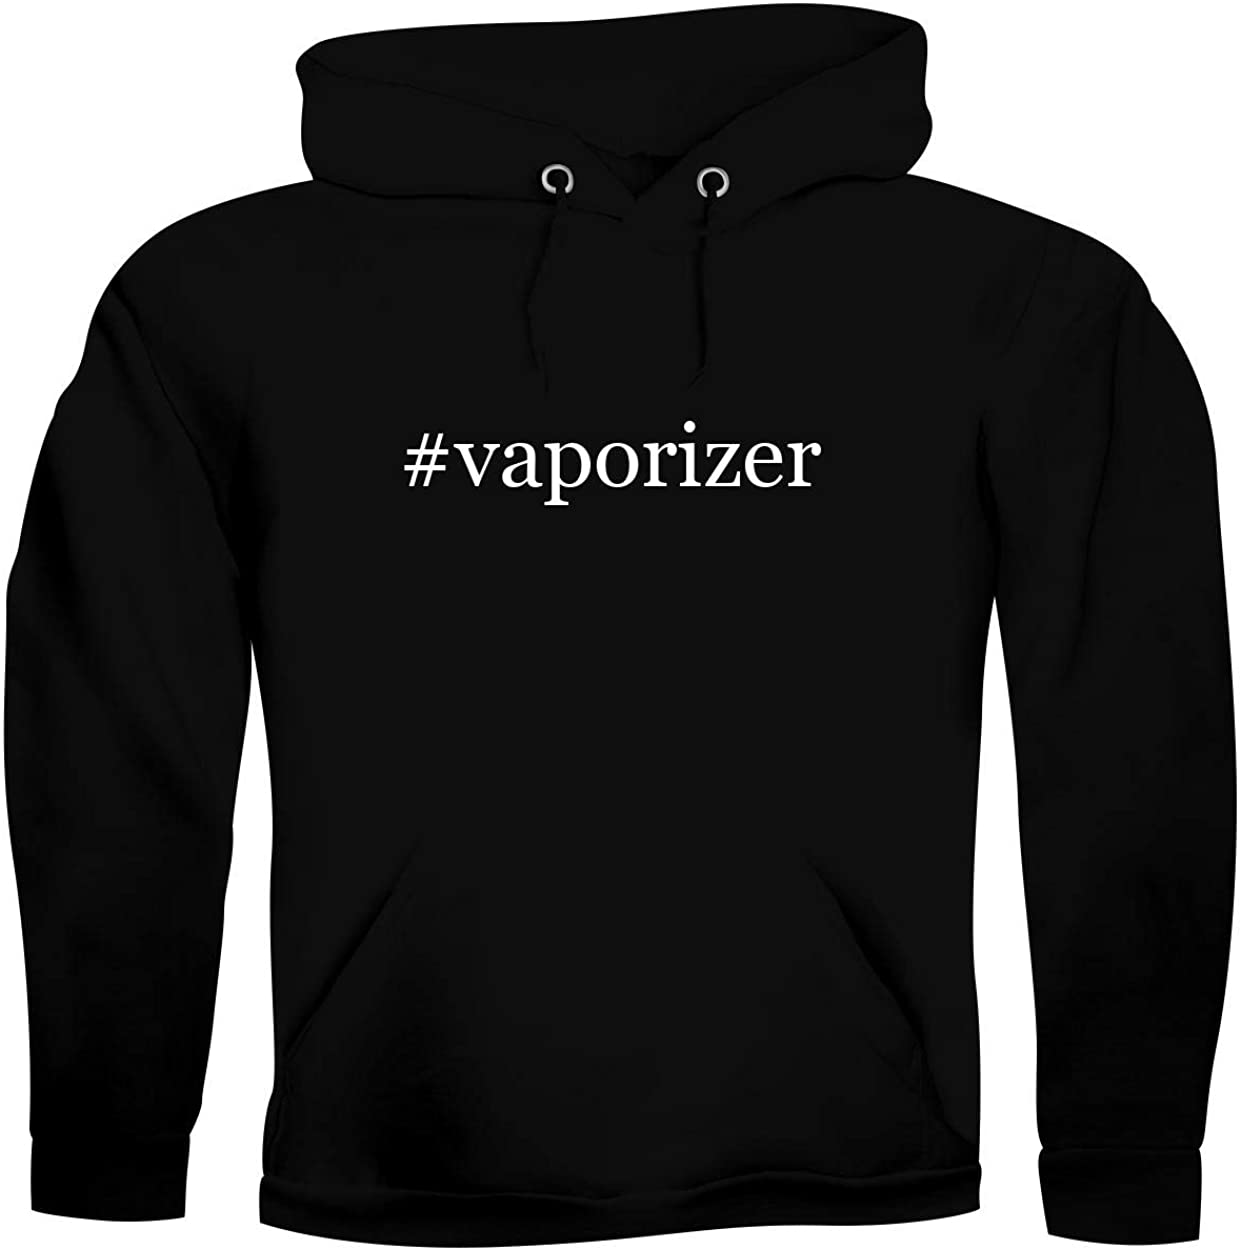 Guys soft hoodies with vaporizer hashtag